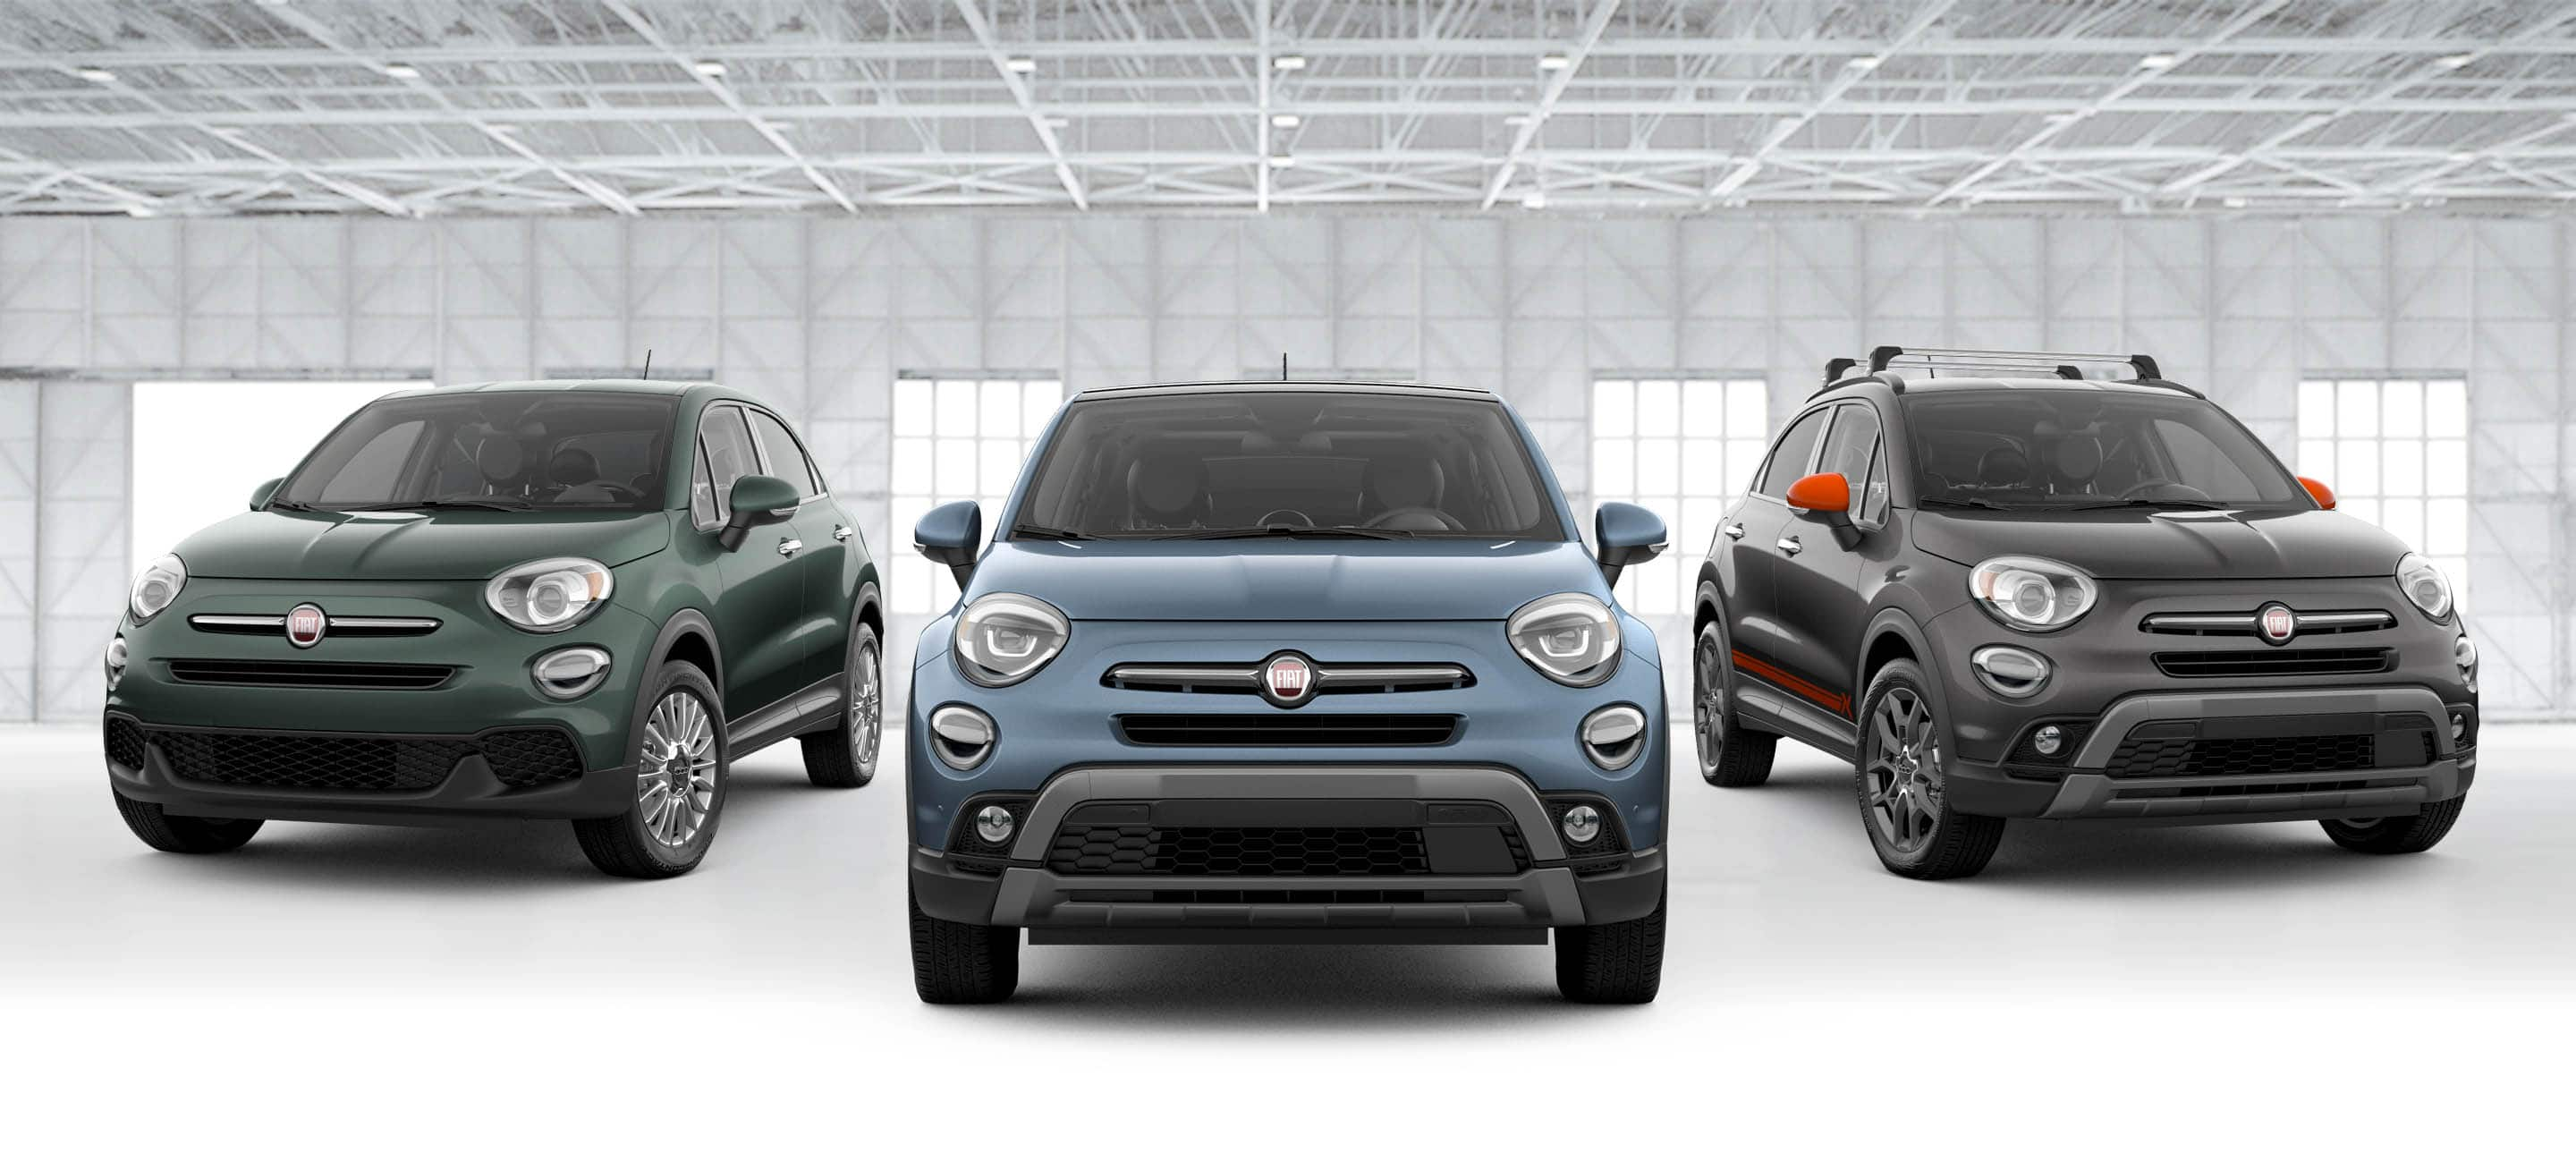 A head-on view of the 2021 FIAT 500X Trekking, Pop and Adventurer models.